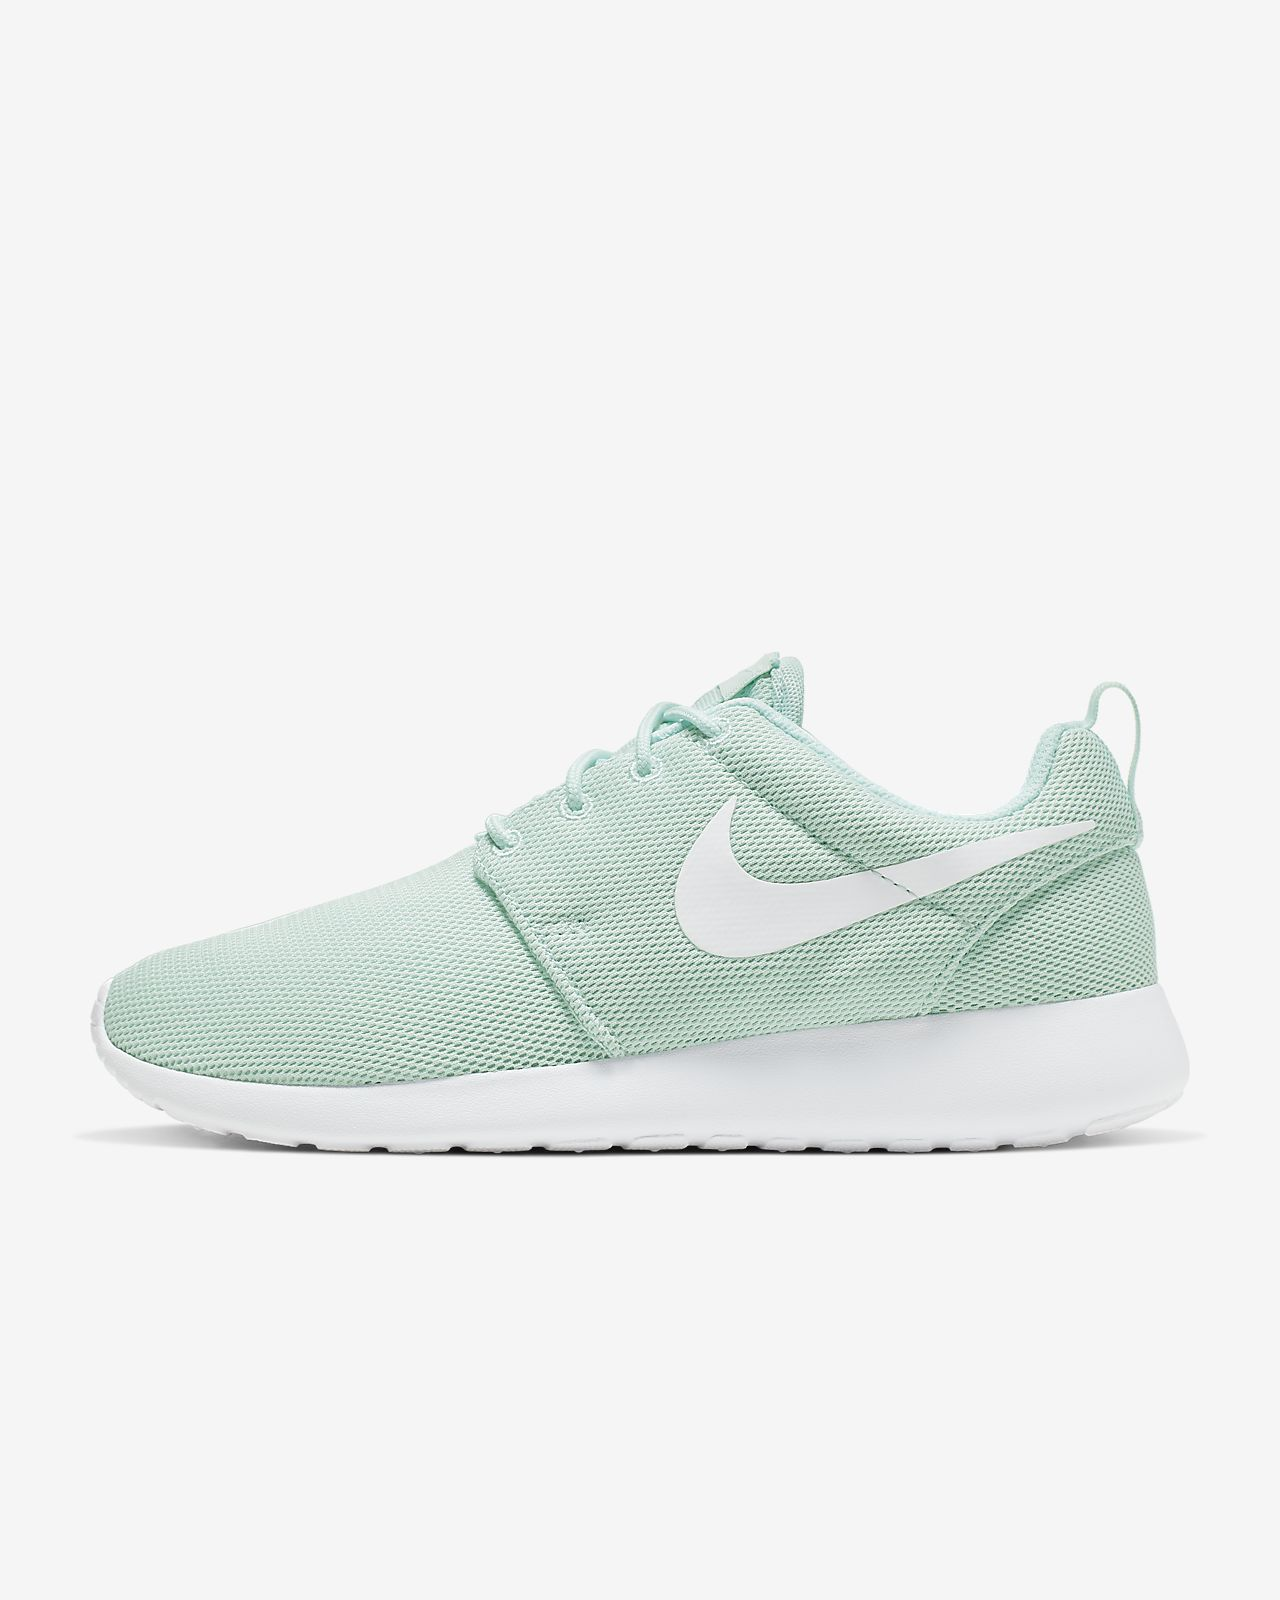 premium selection ce19c a22a9 ... Nike Roshe One Women s Shoe